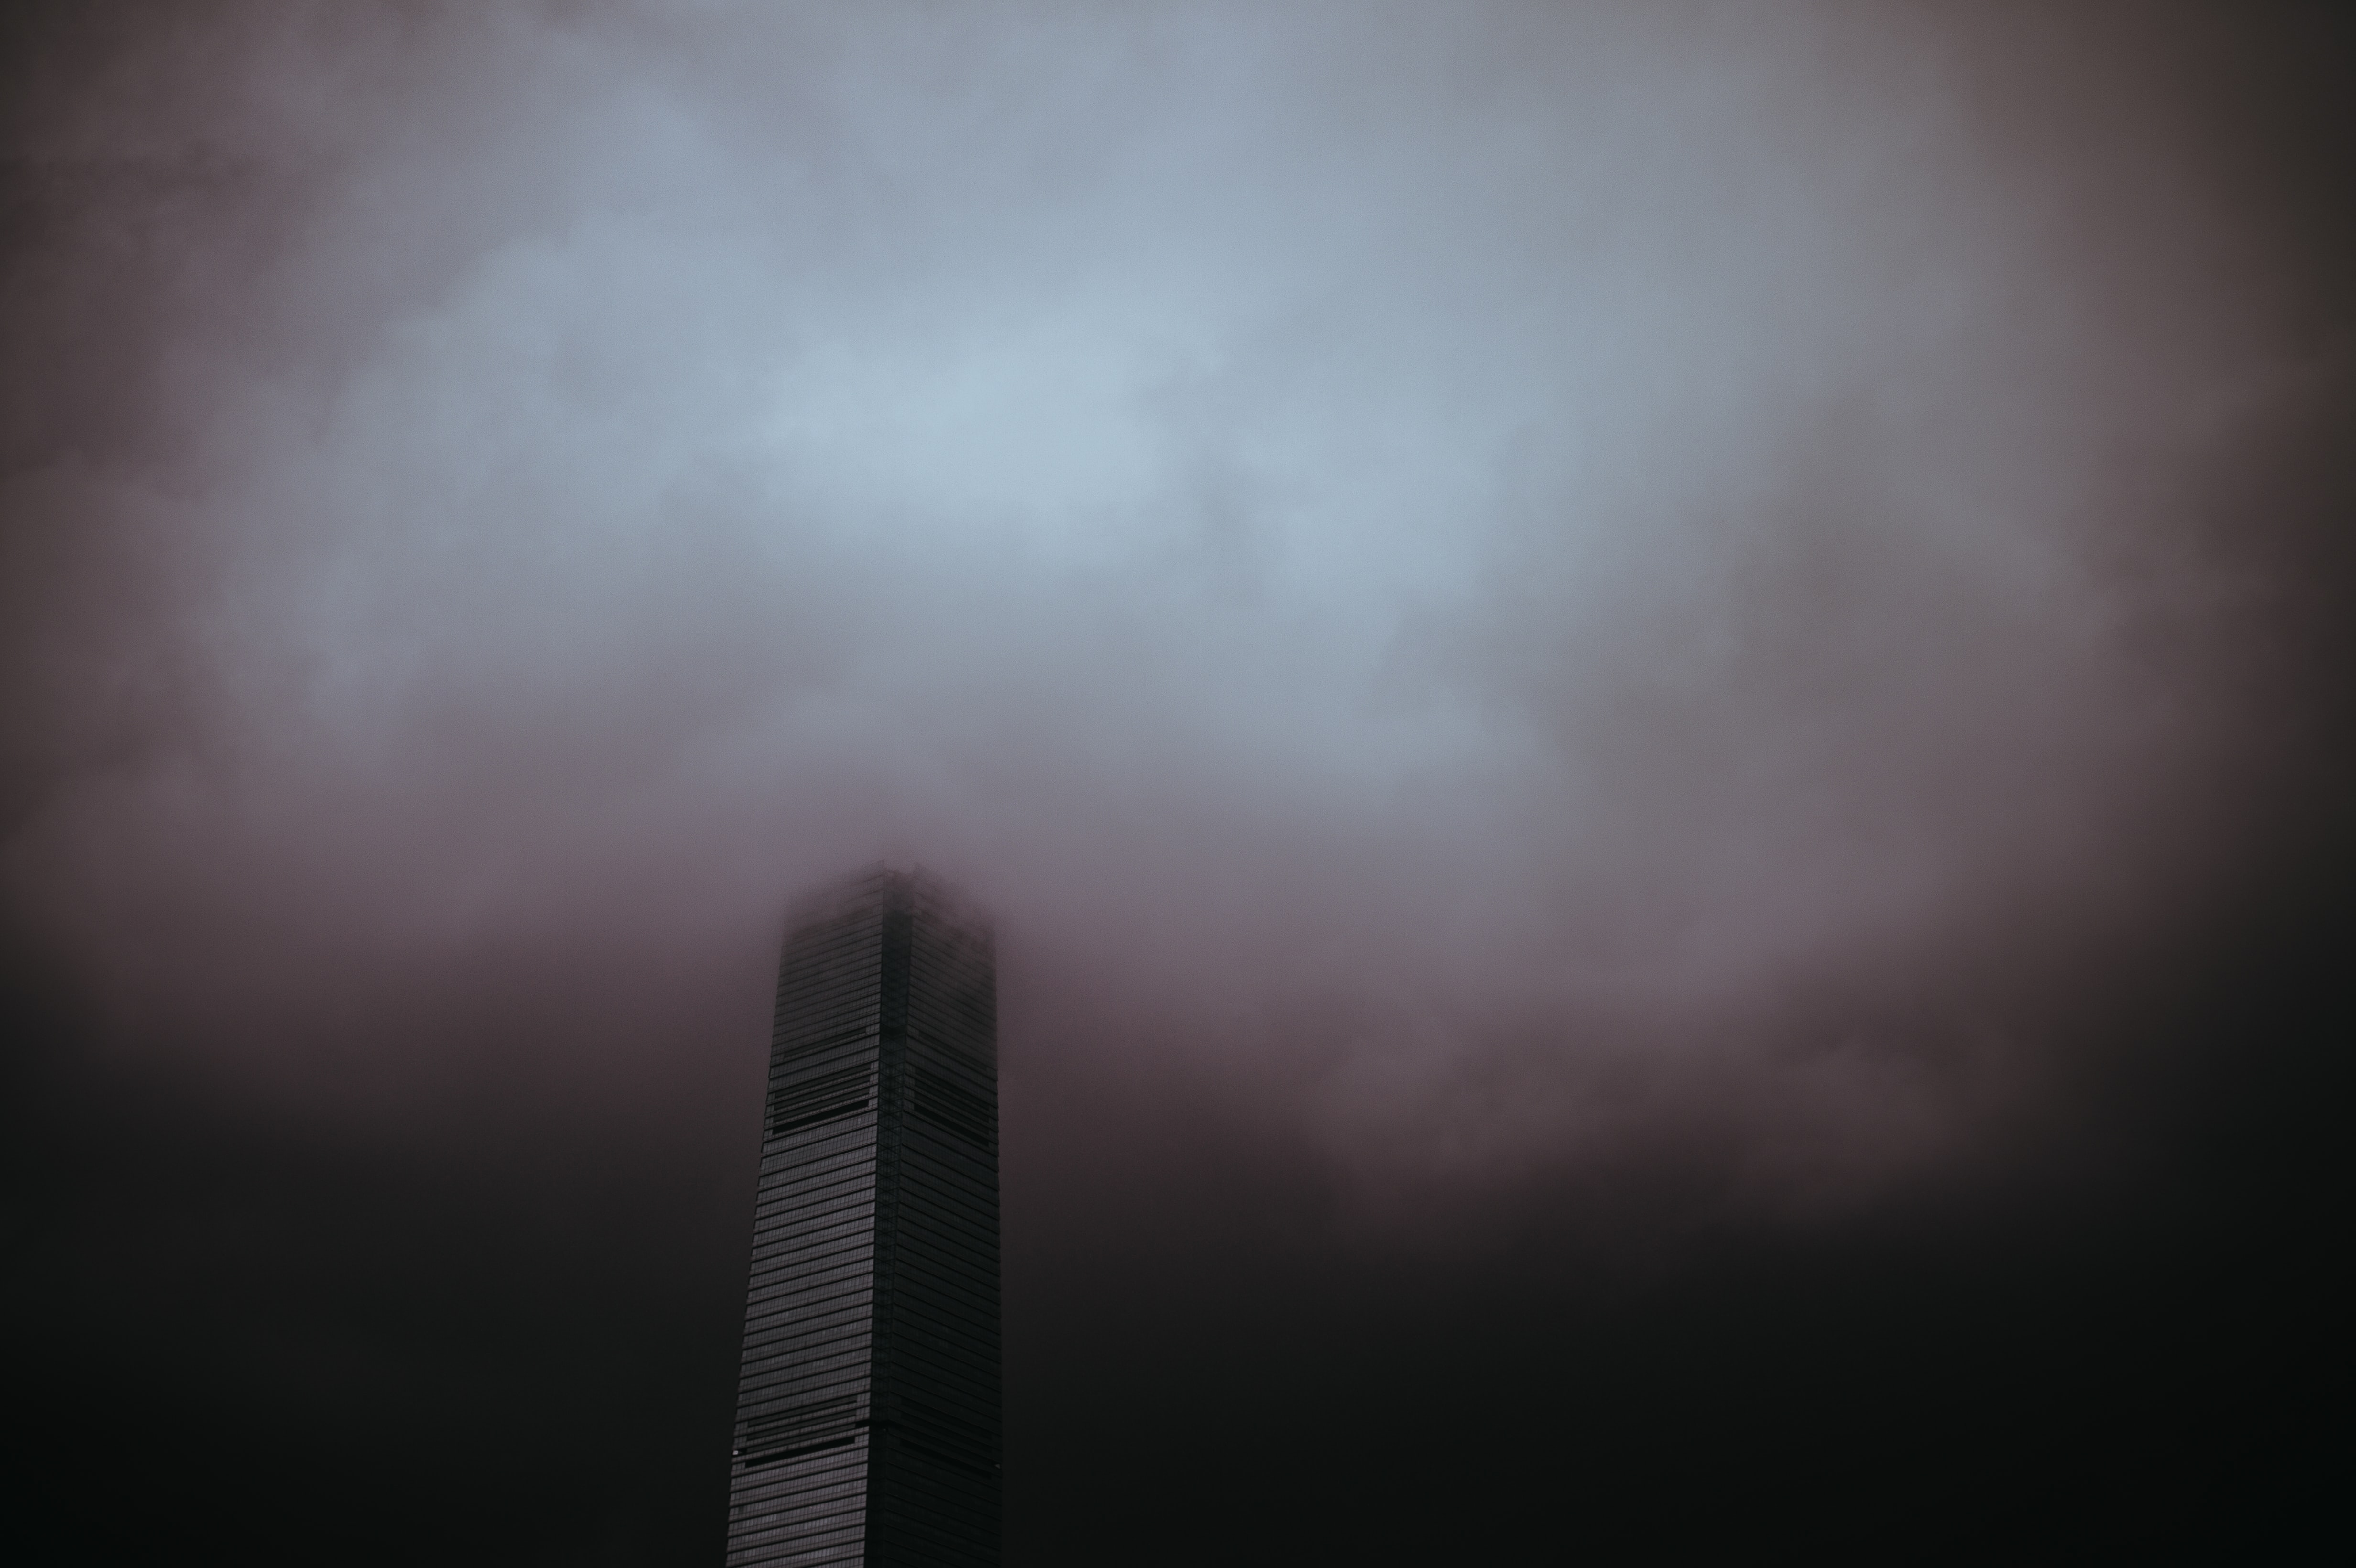 high-rise building under gray sky